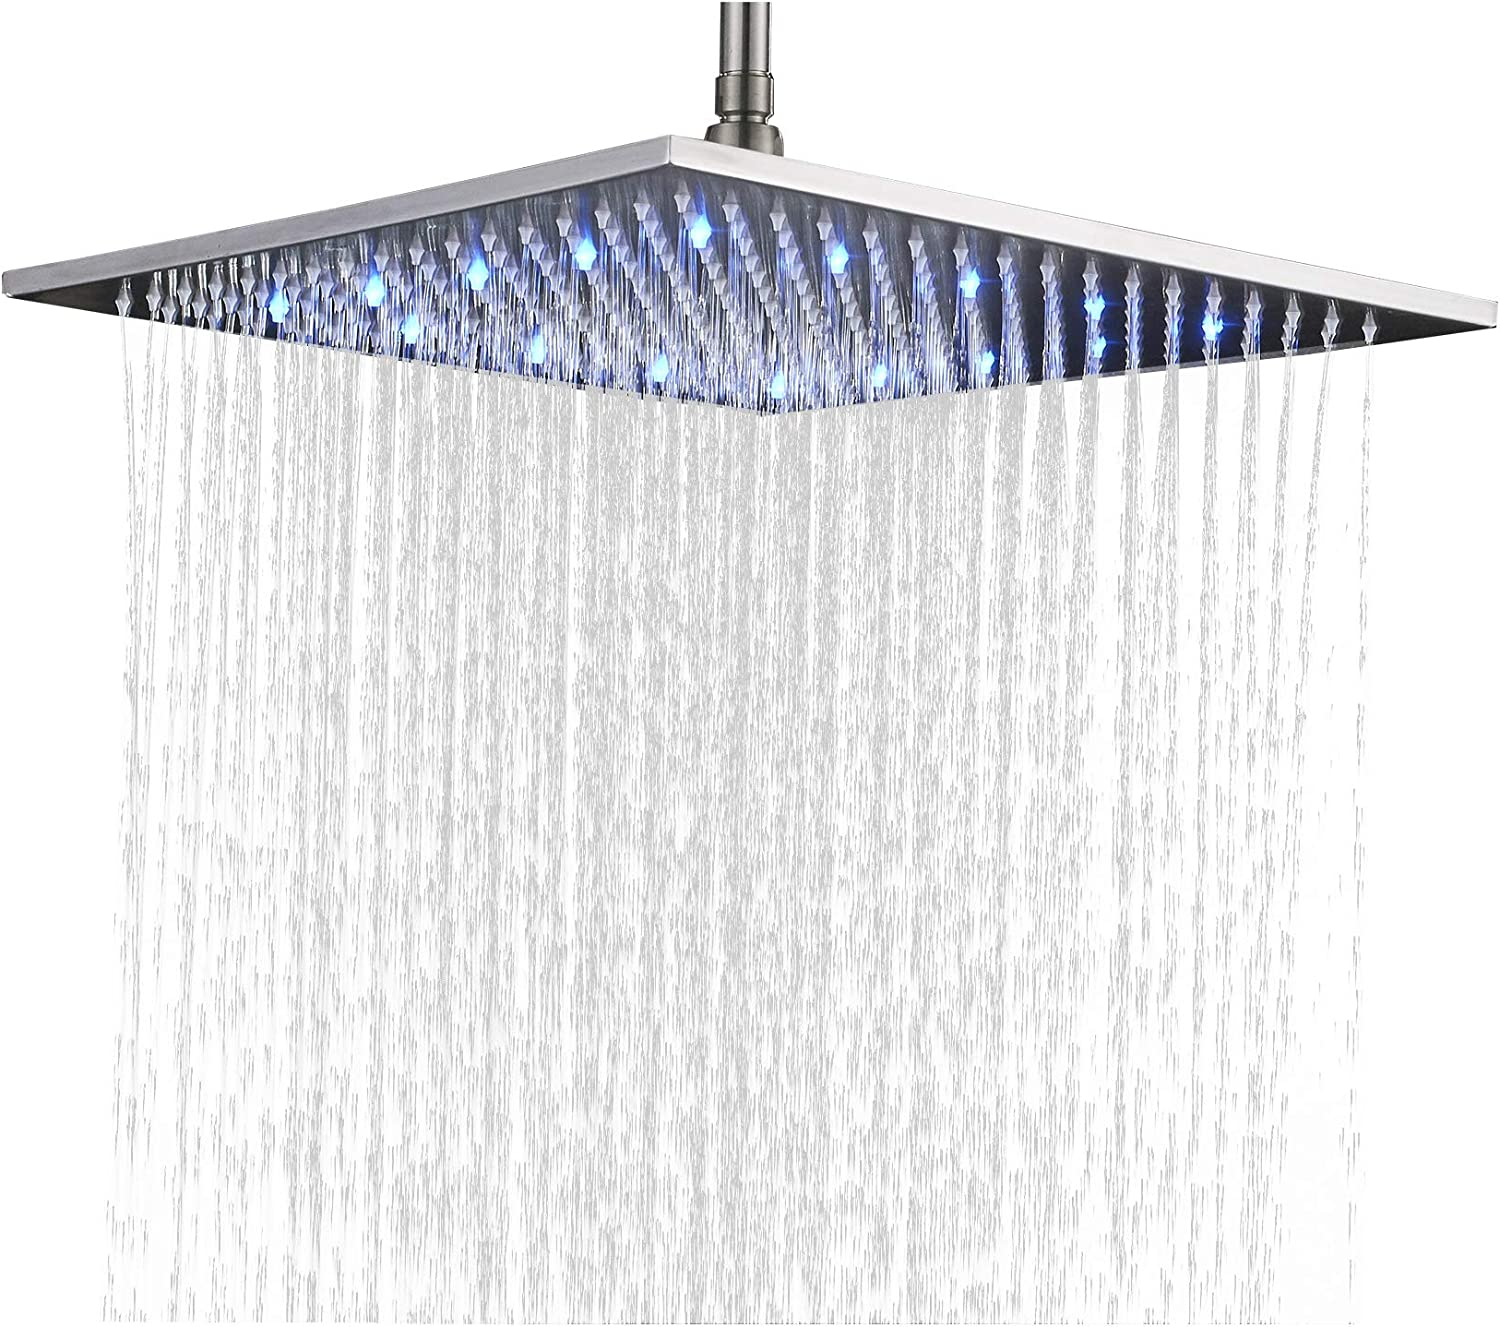 55% OFF Rozin Bathroom Replacement LED Changing Rai 16-inch Square Color Be super welcome